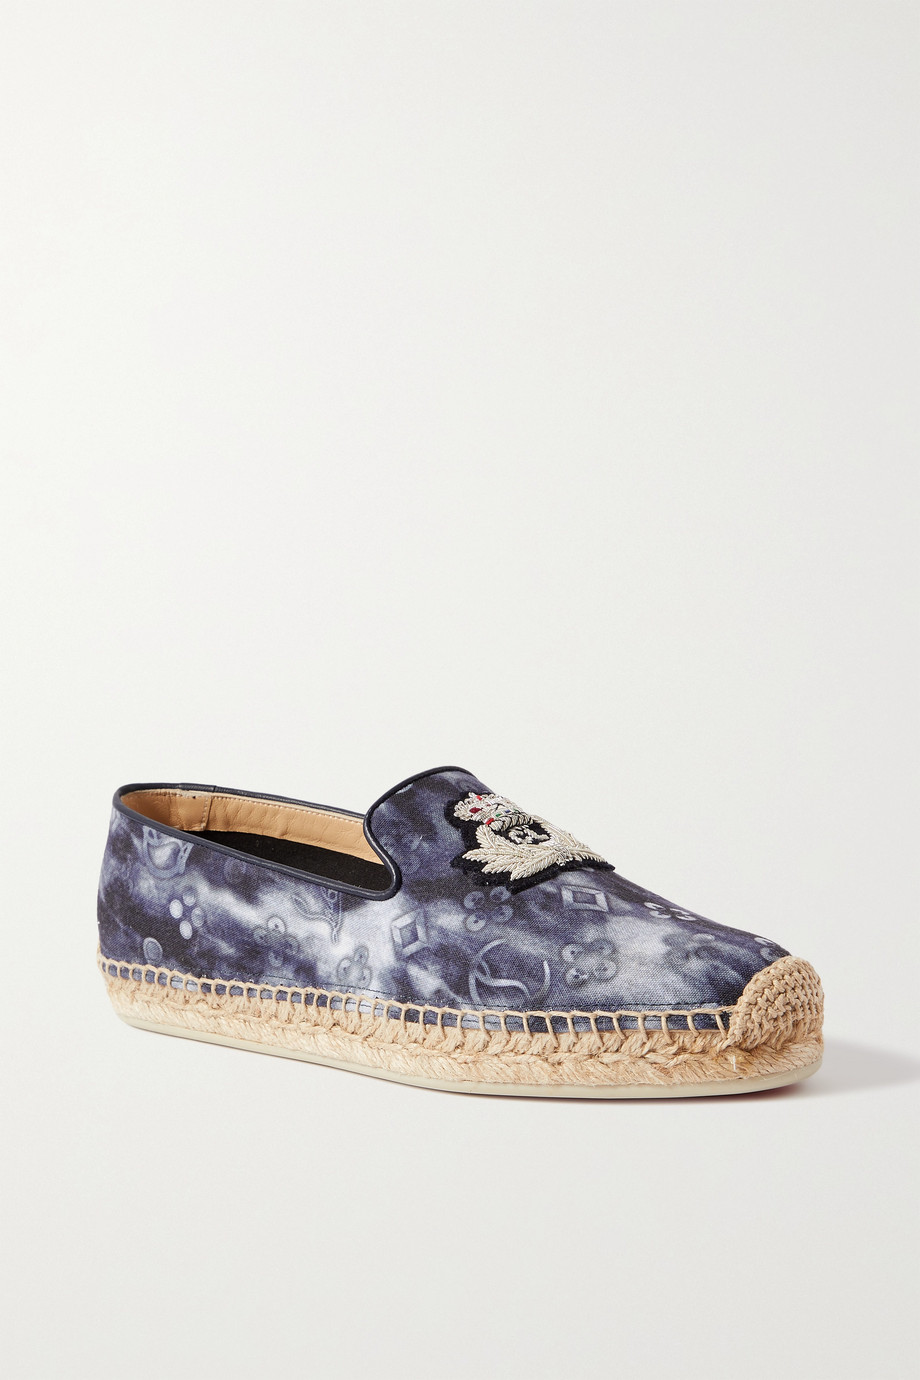 CHRISTIAN LOUBOUTIN Nanou Orlato logo-embroidered tie-dyed canvas espadrilles